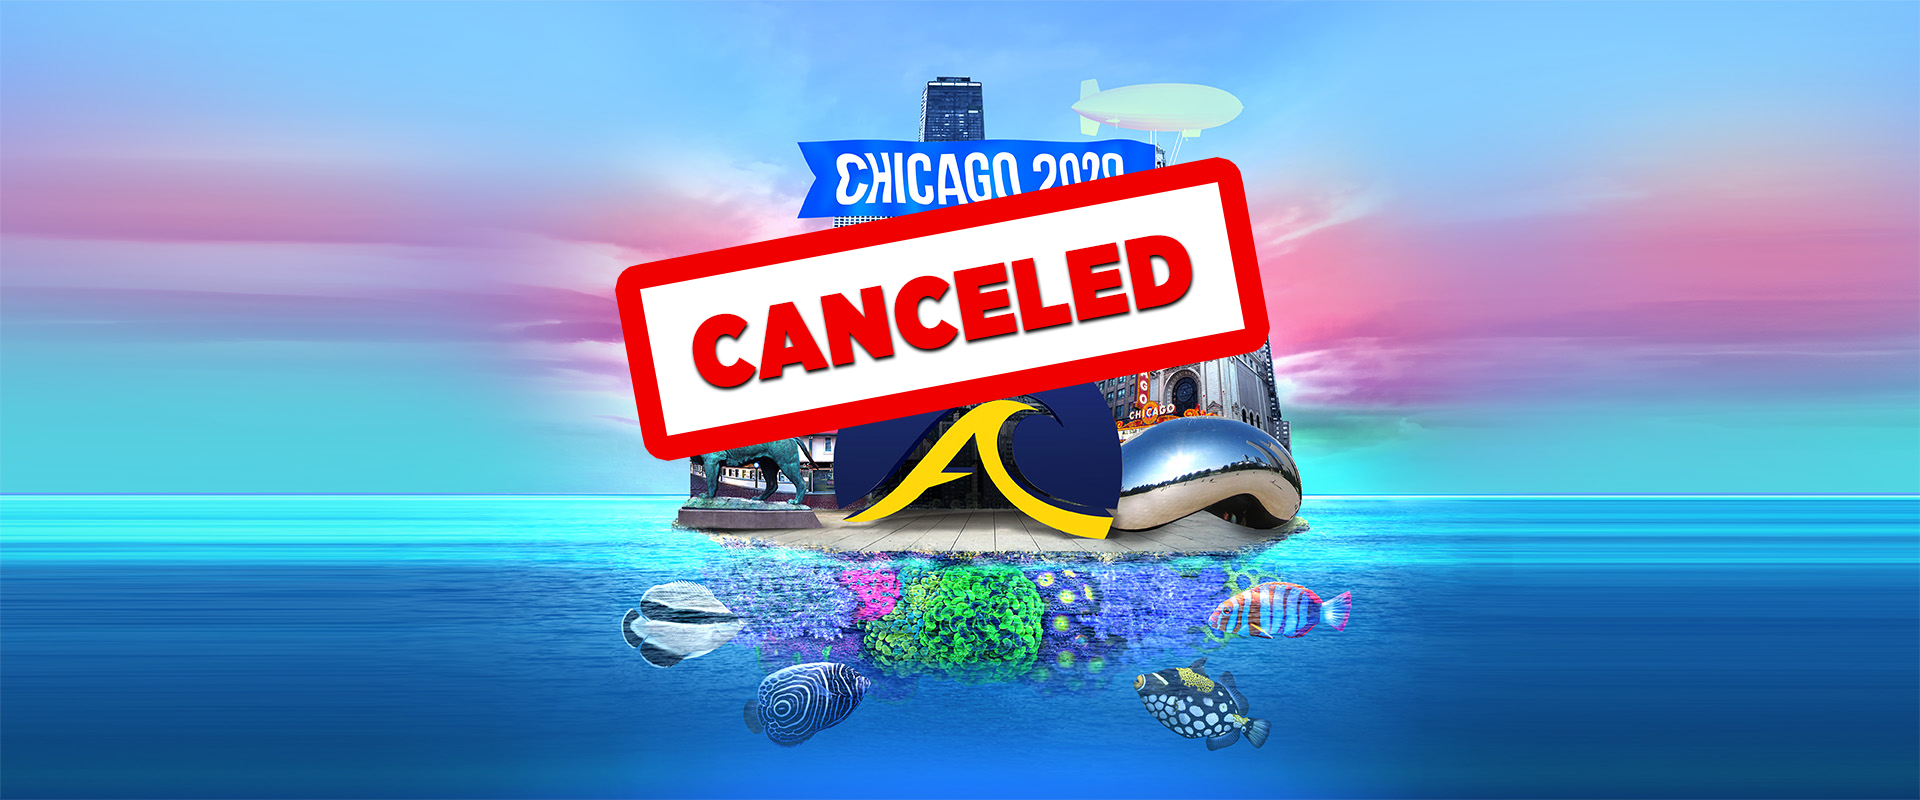 2020 SHOW CANCELED